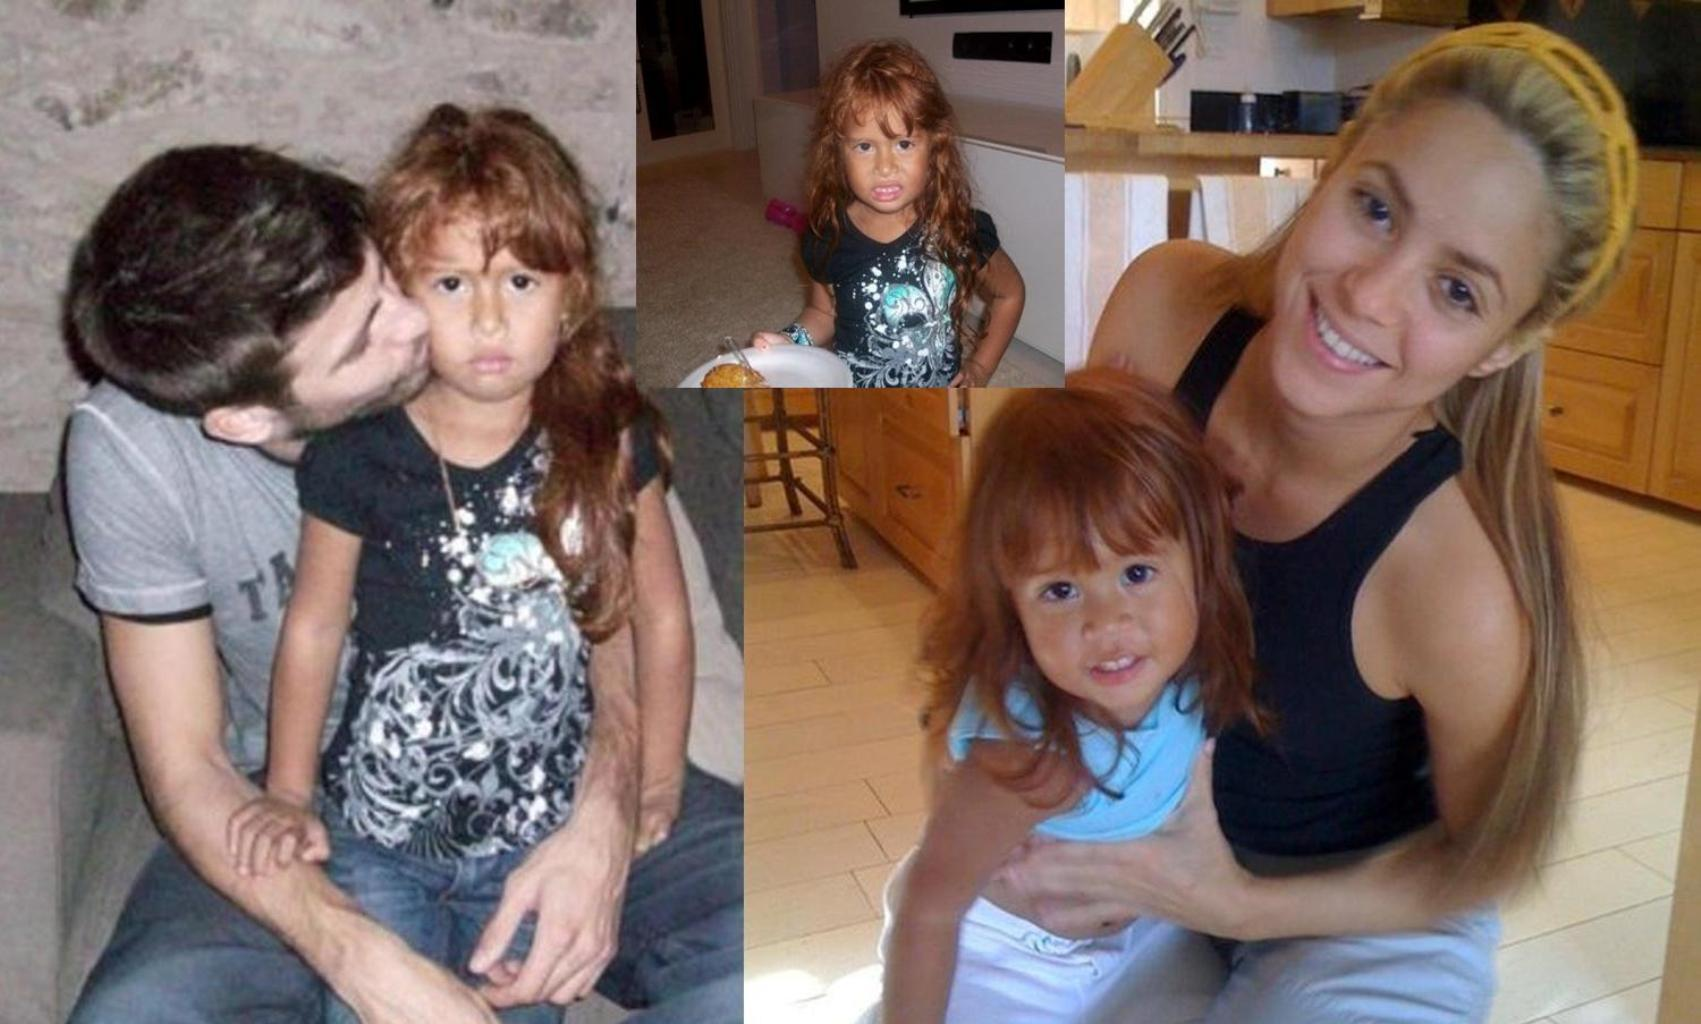 Shakira And Pique In The Photos With The Same Child Shakira And Gerard Pique Photo 19413383 Fanpop